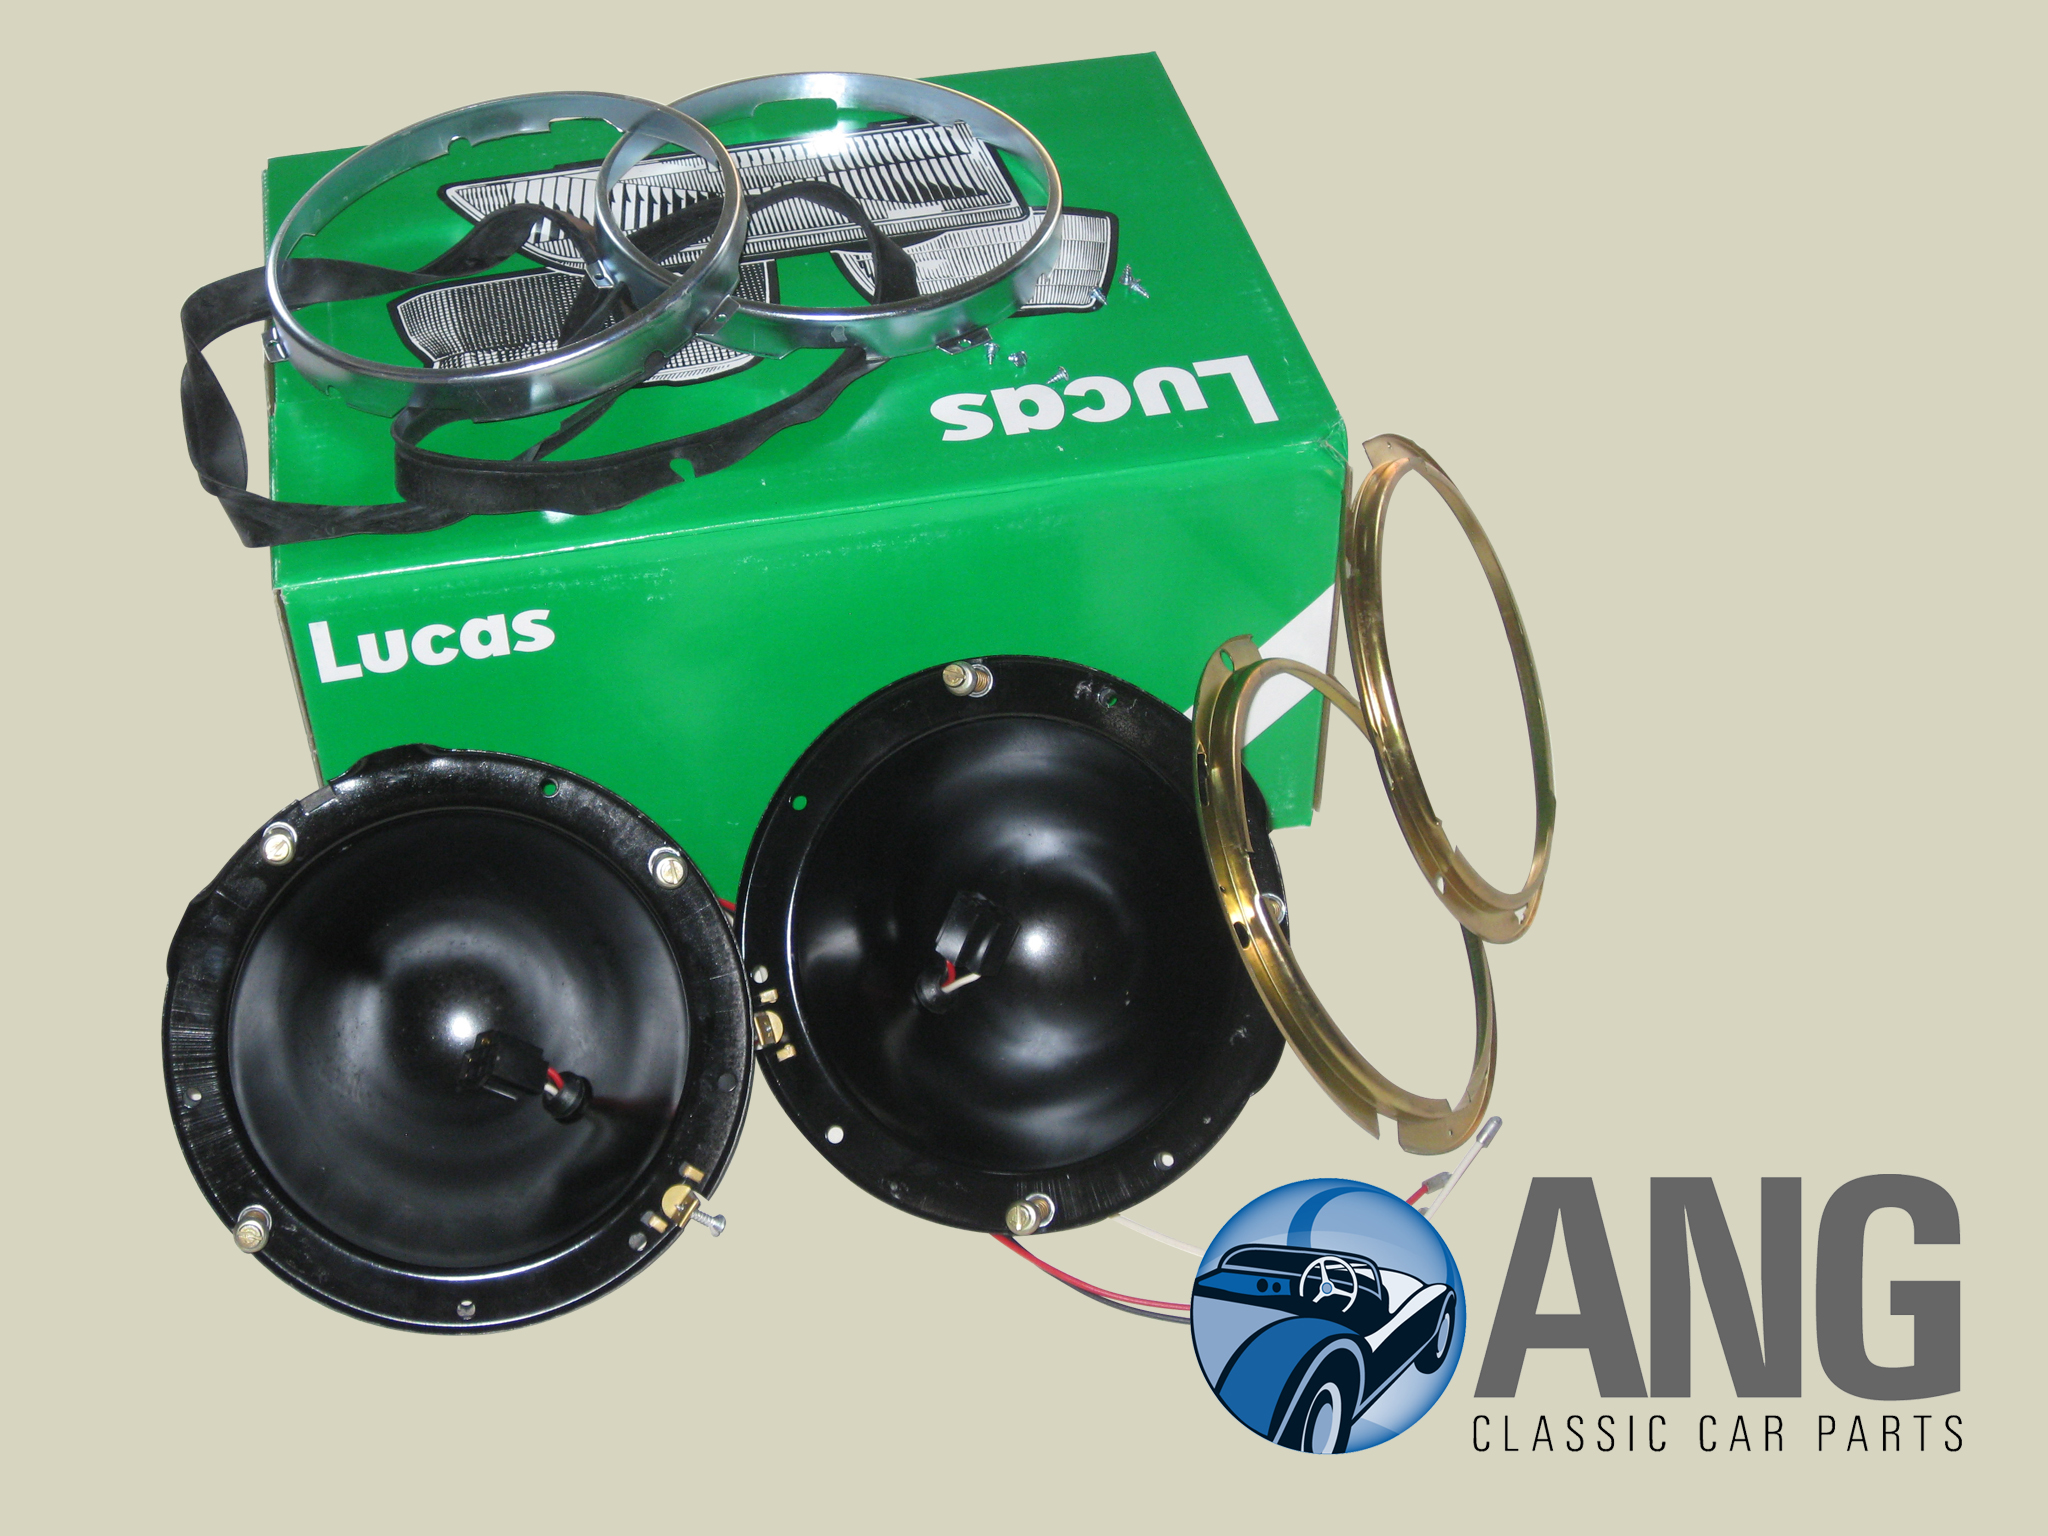 LUCAS HEADLAMP BOWL KIT SBC3 ; MGB, MGB-GT, MGB-GT V8